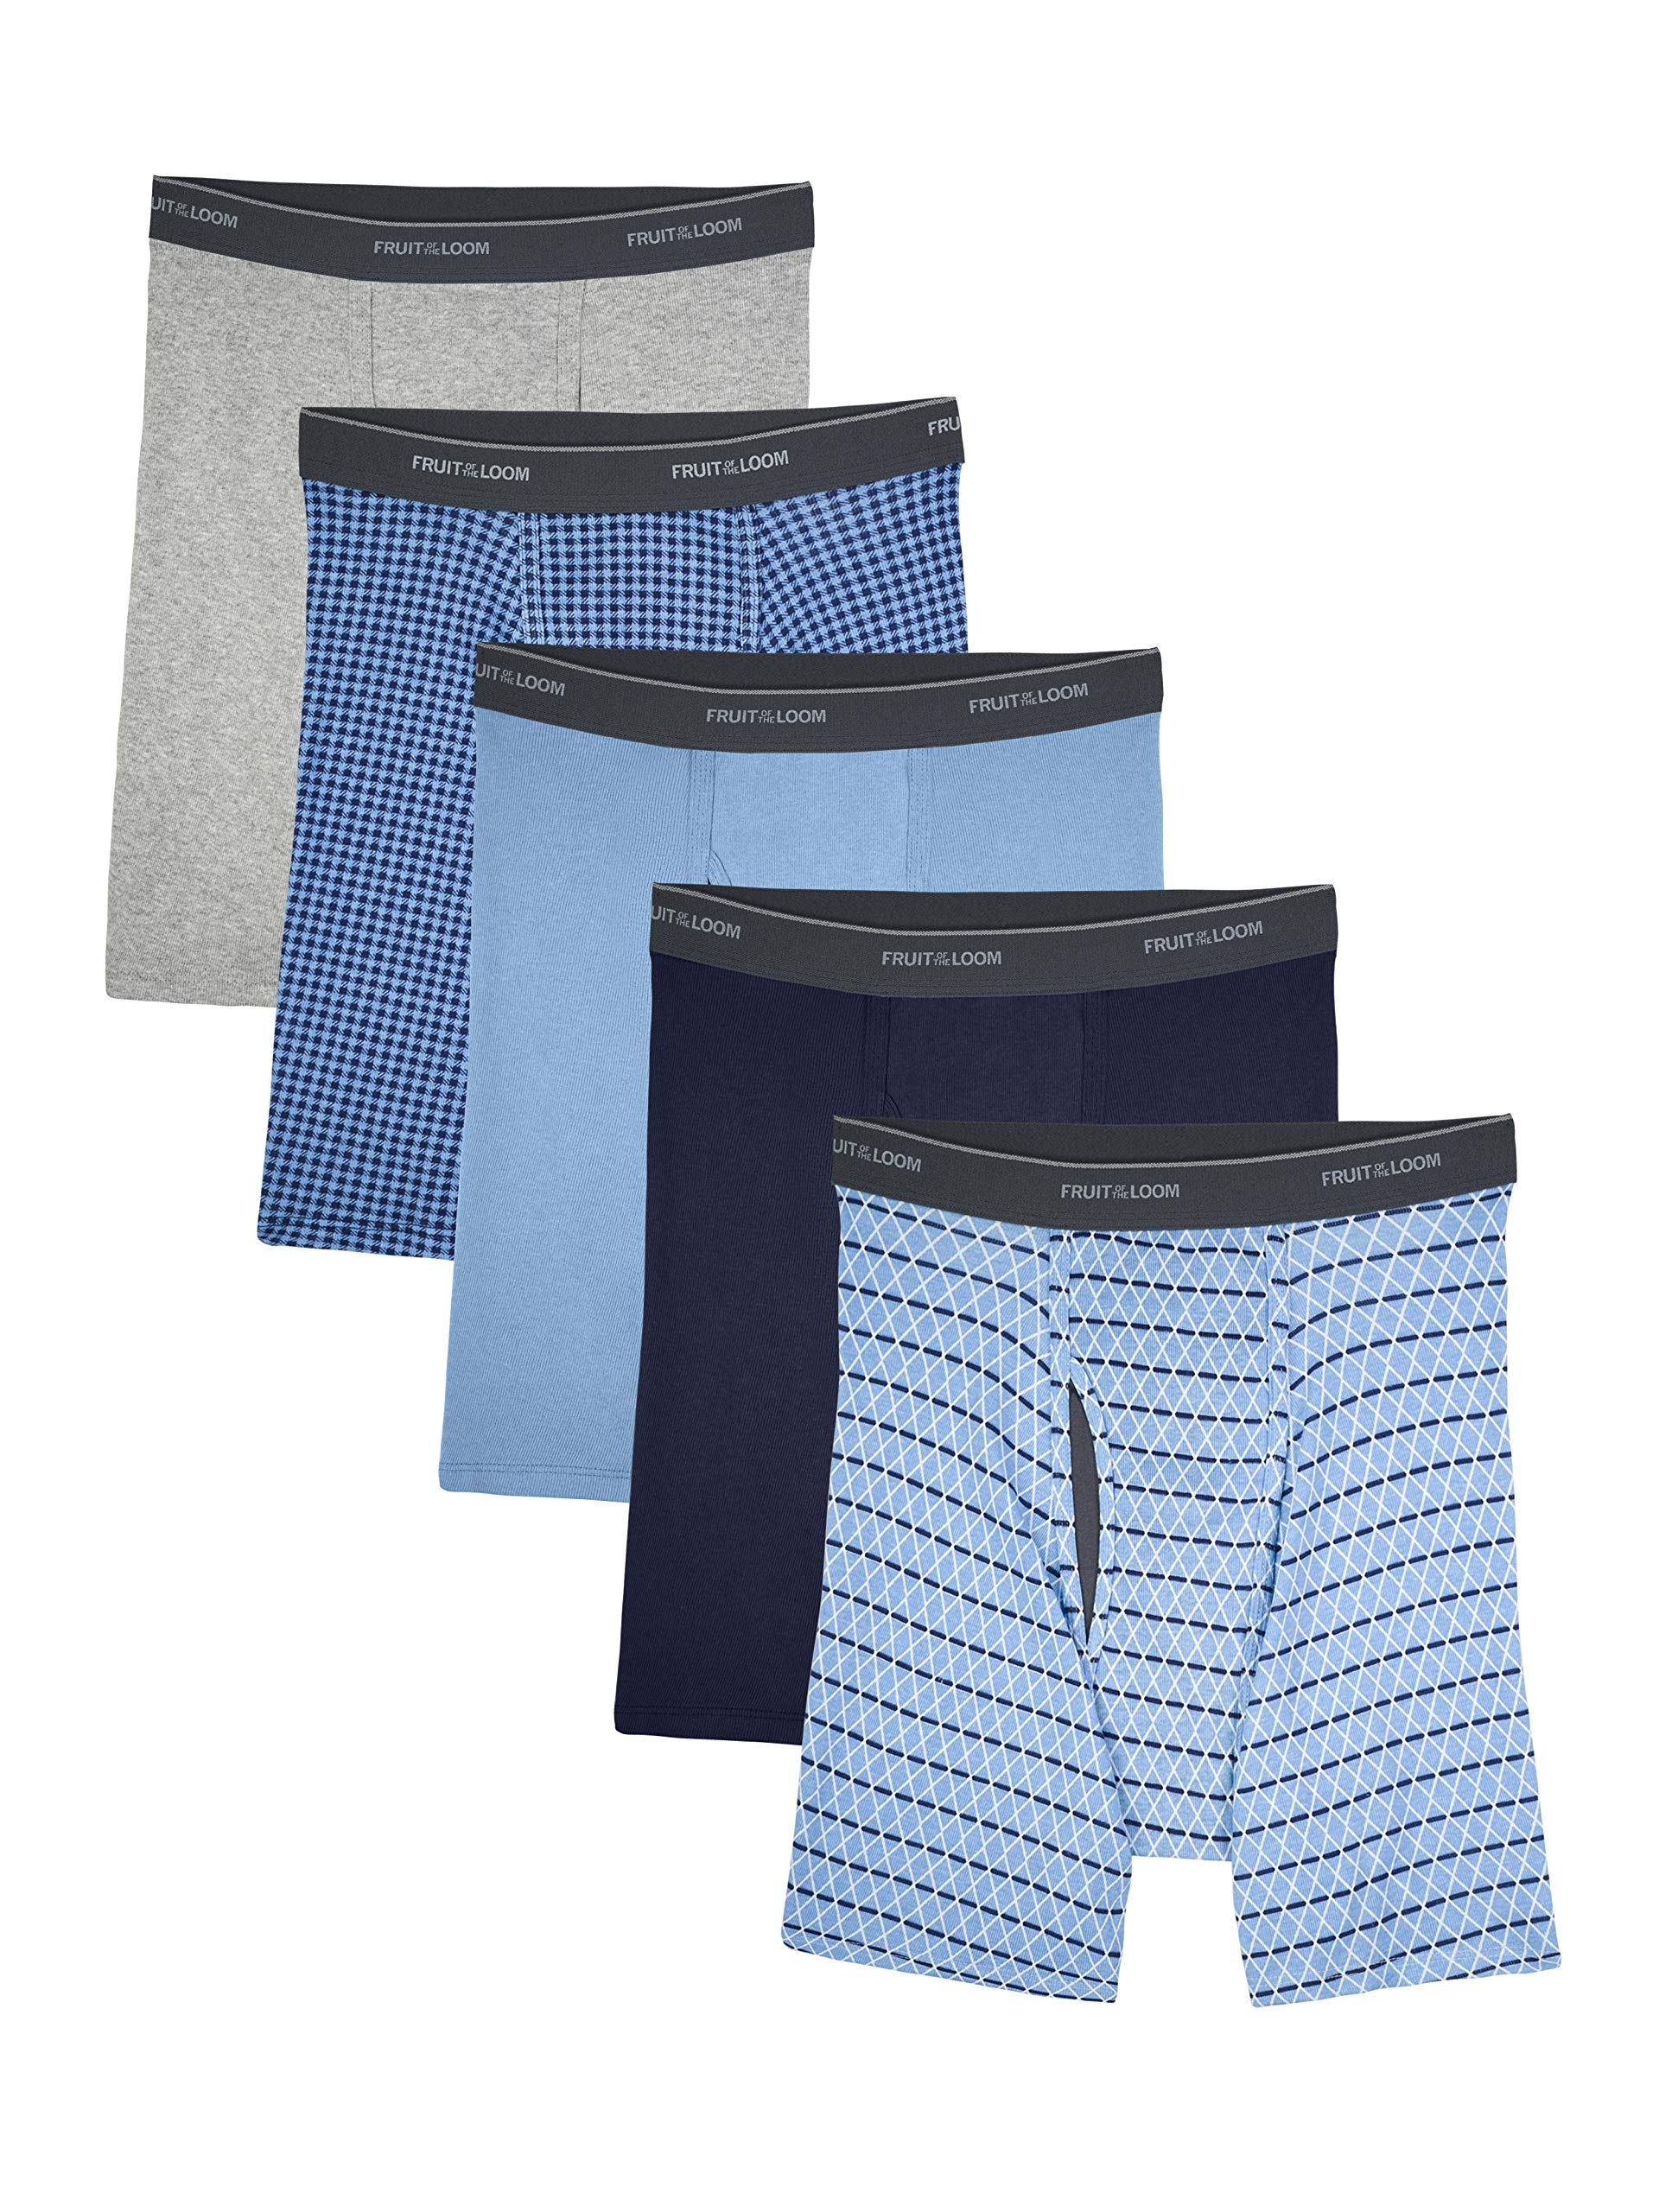 Fruit of the Loom Men's CoolZone Boxer Briefs, Argyle, Small by Fruit of the Loom